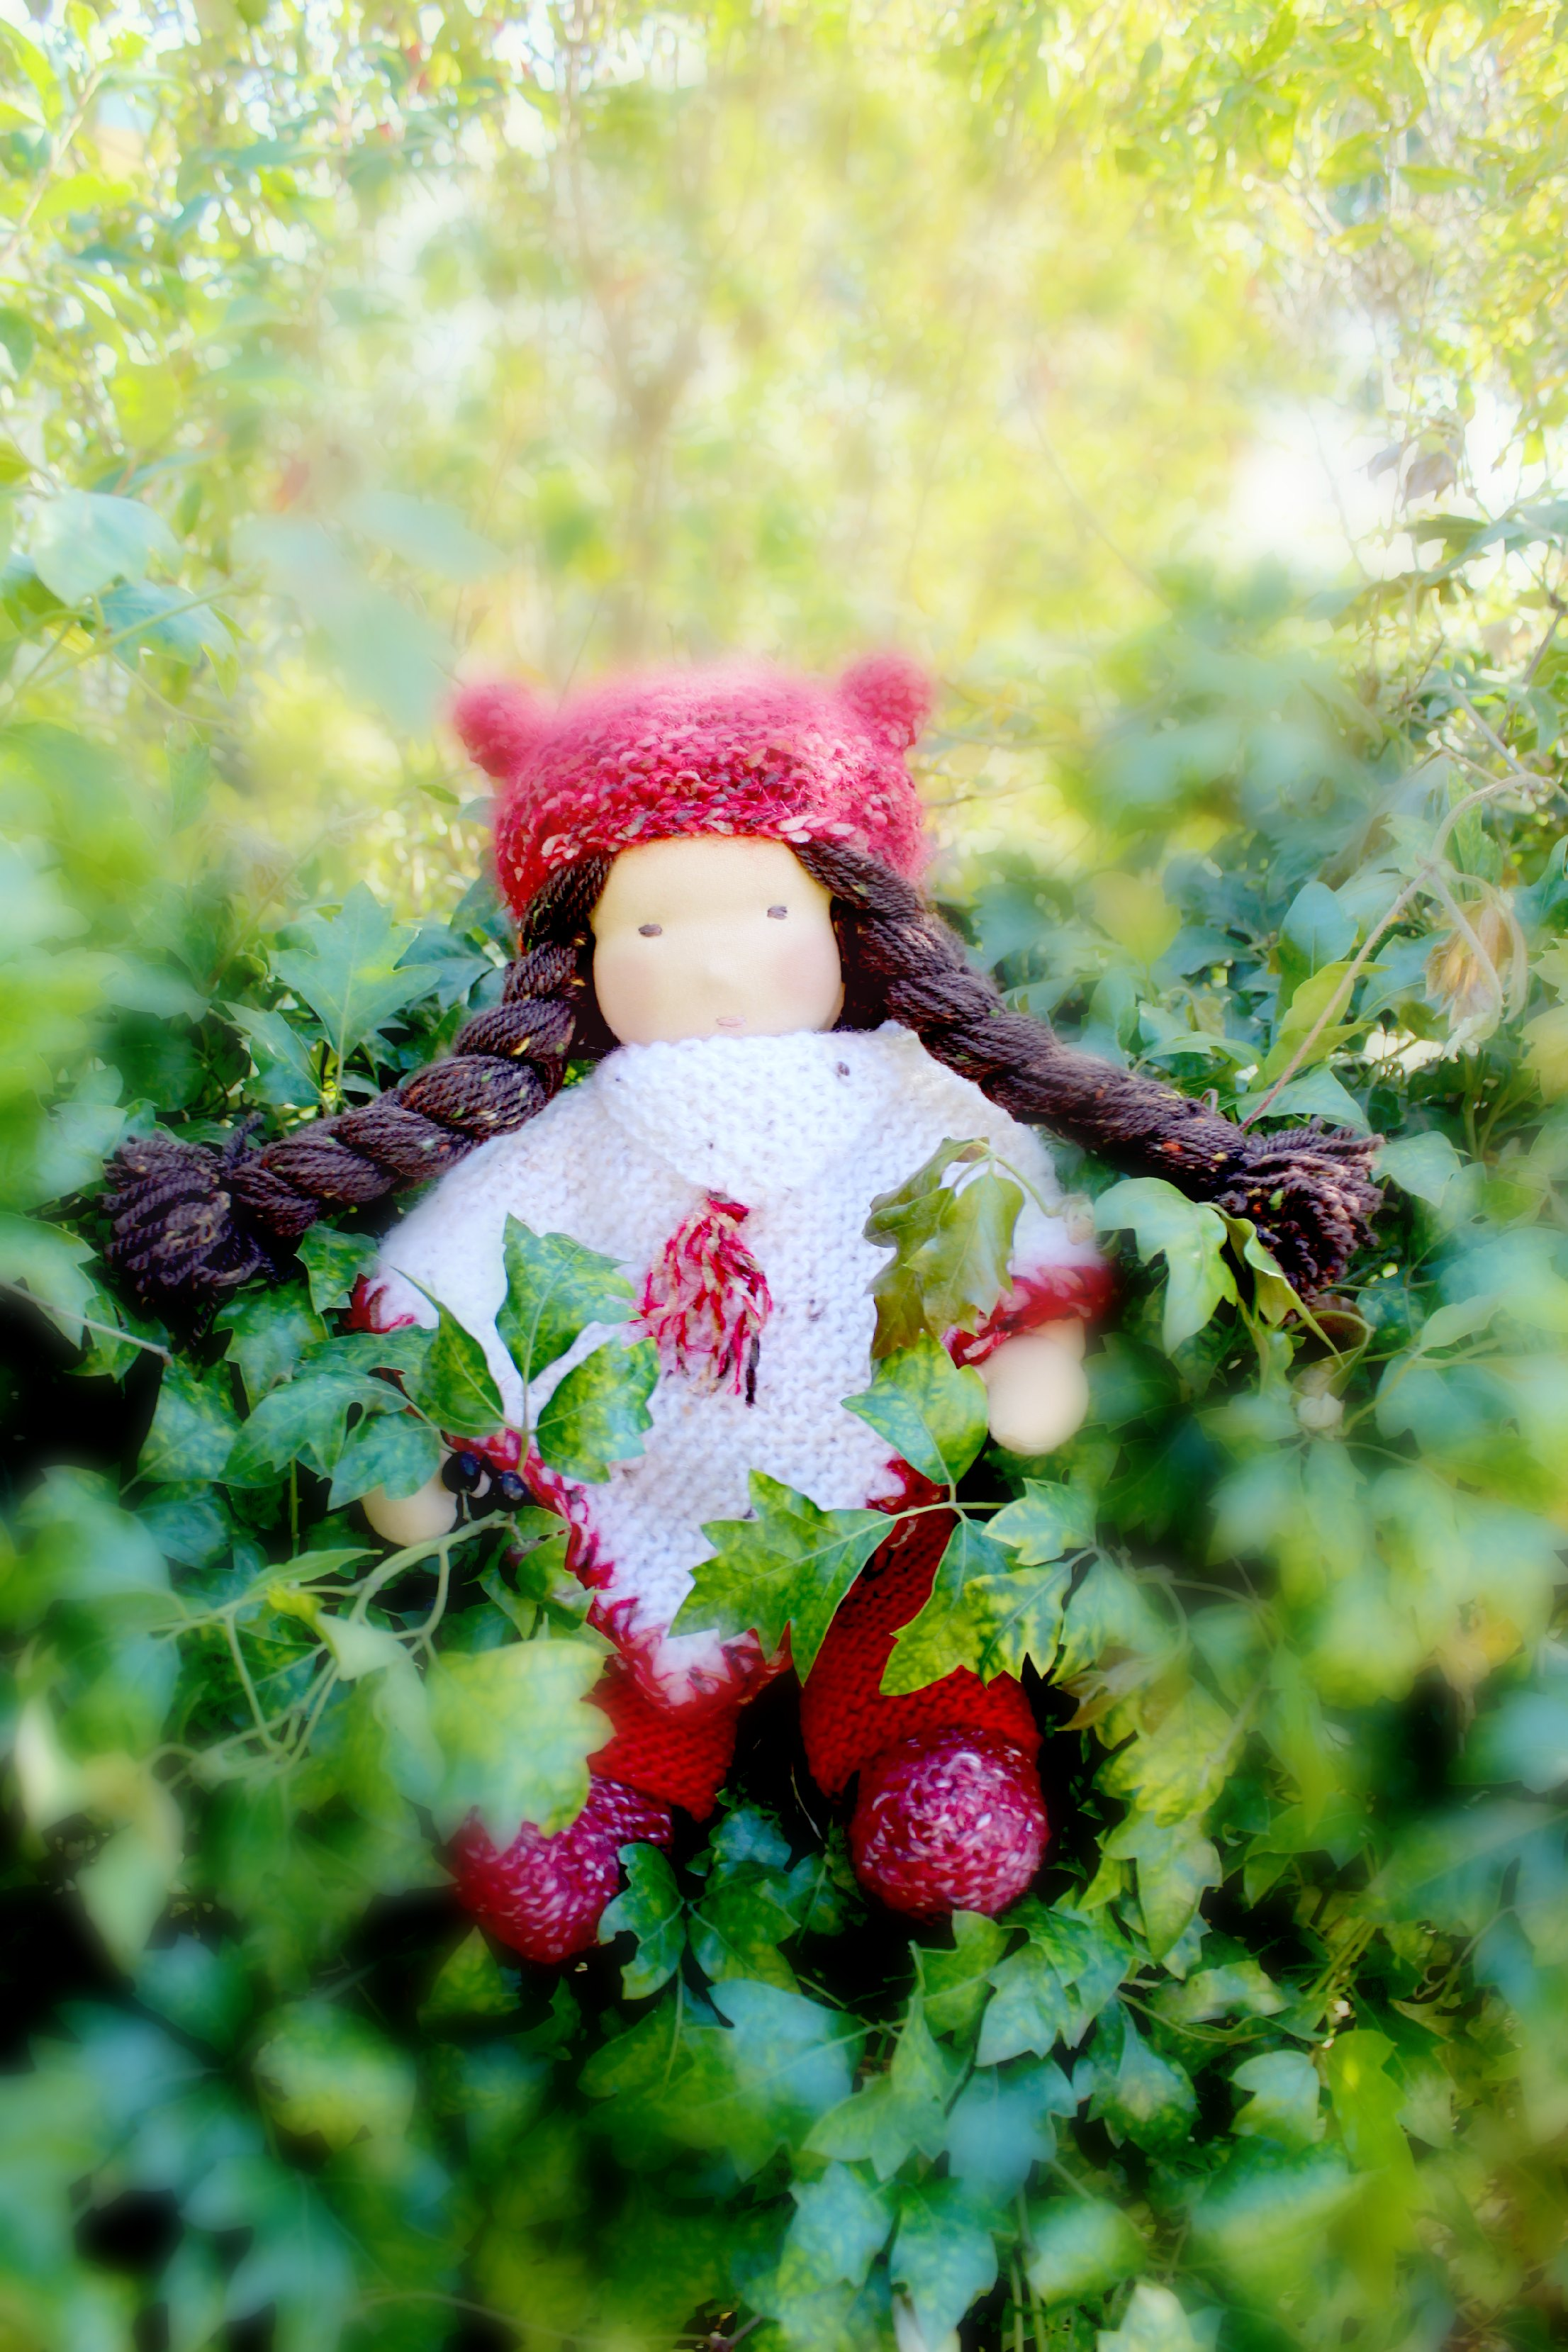 121219 Yvonne's 16 inch Waldorf cuddle doll sitting on a berry fence